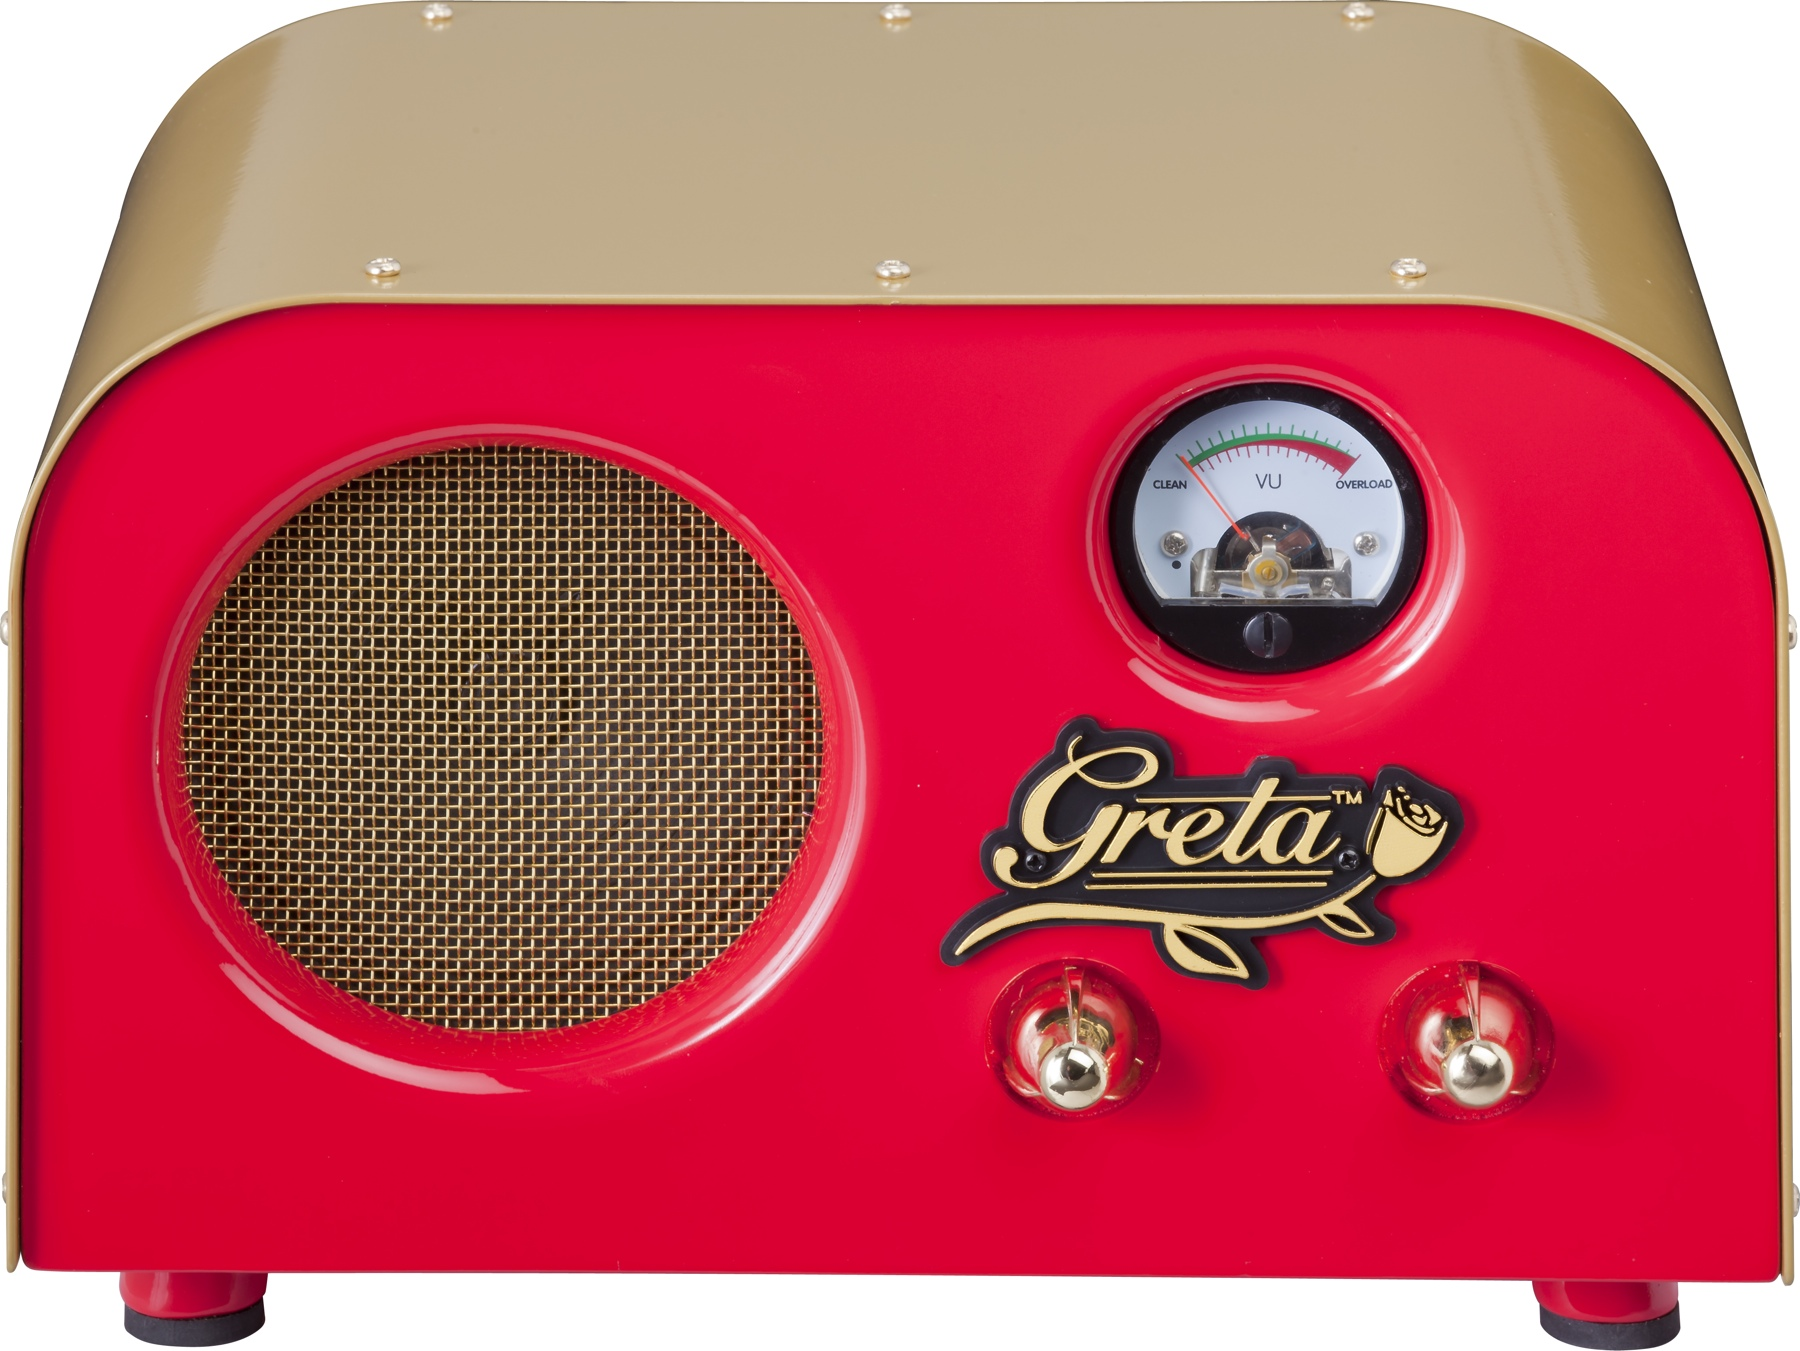 Fender Pawn Shop Greta – Ampwares on